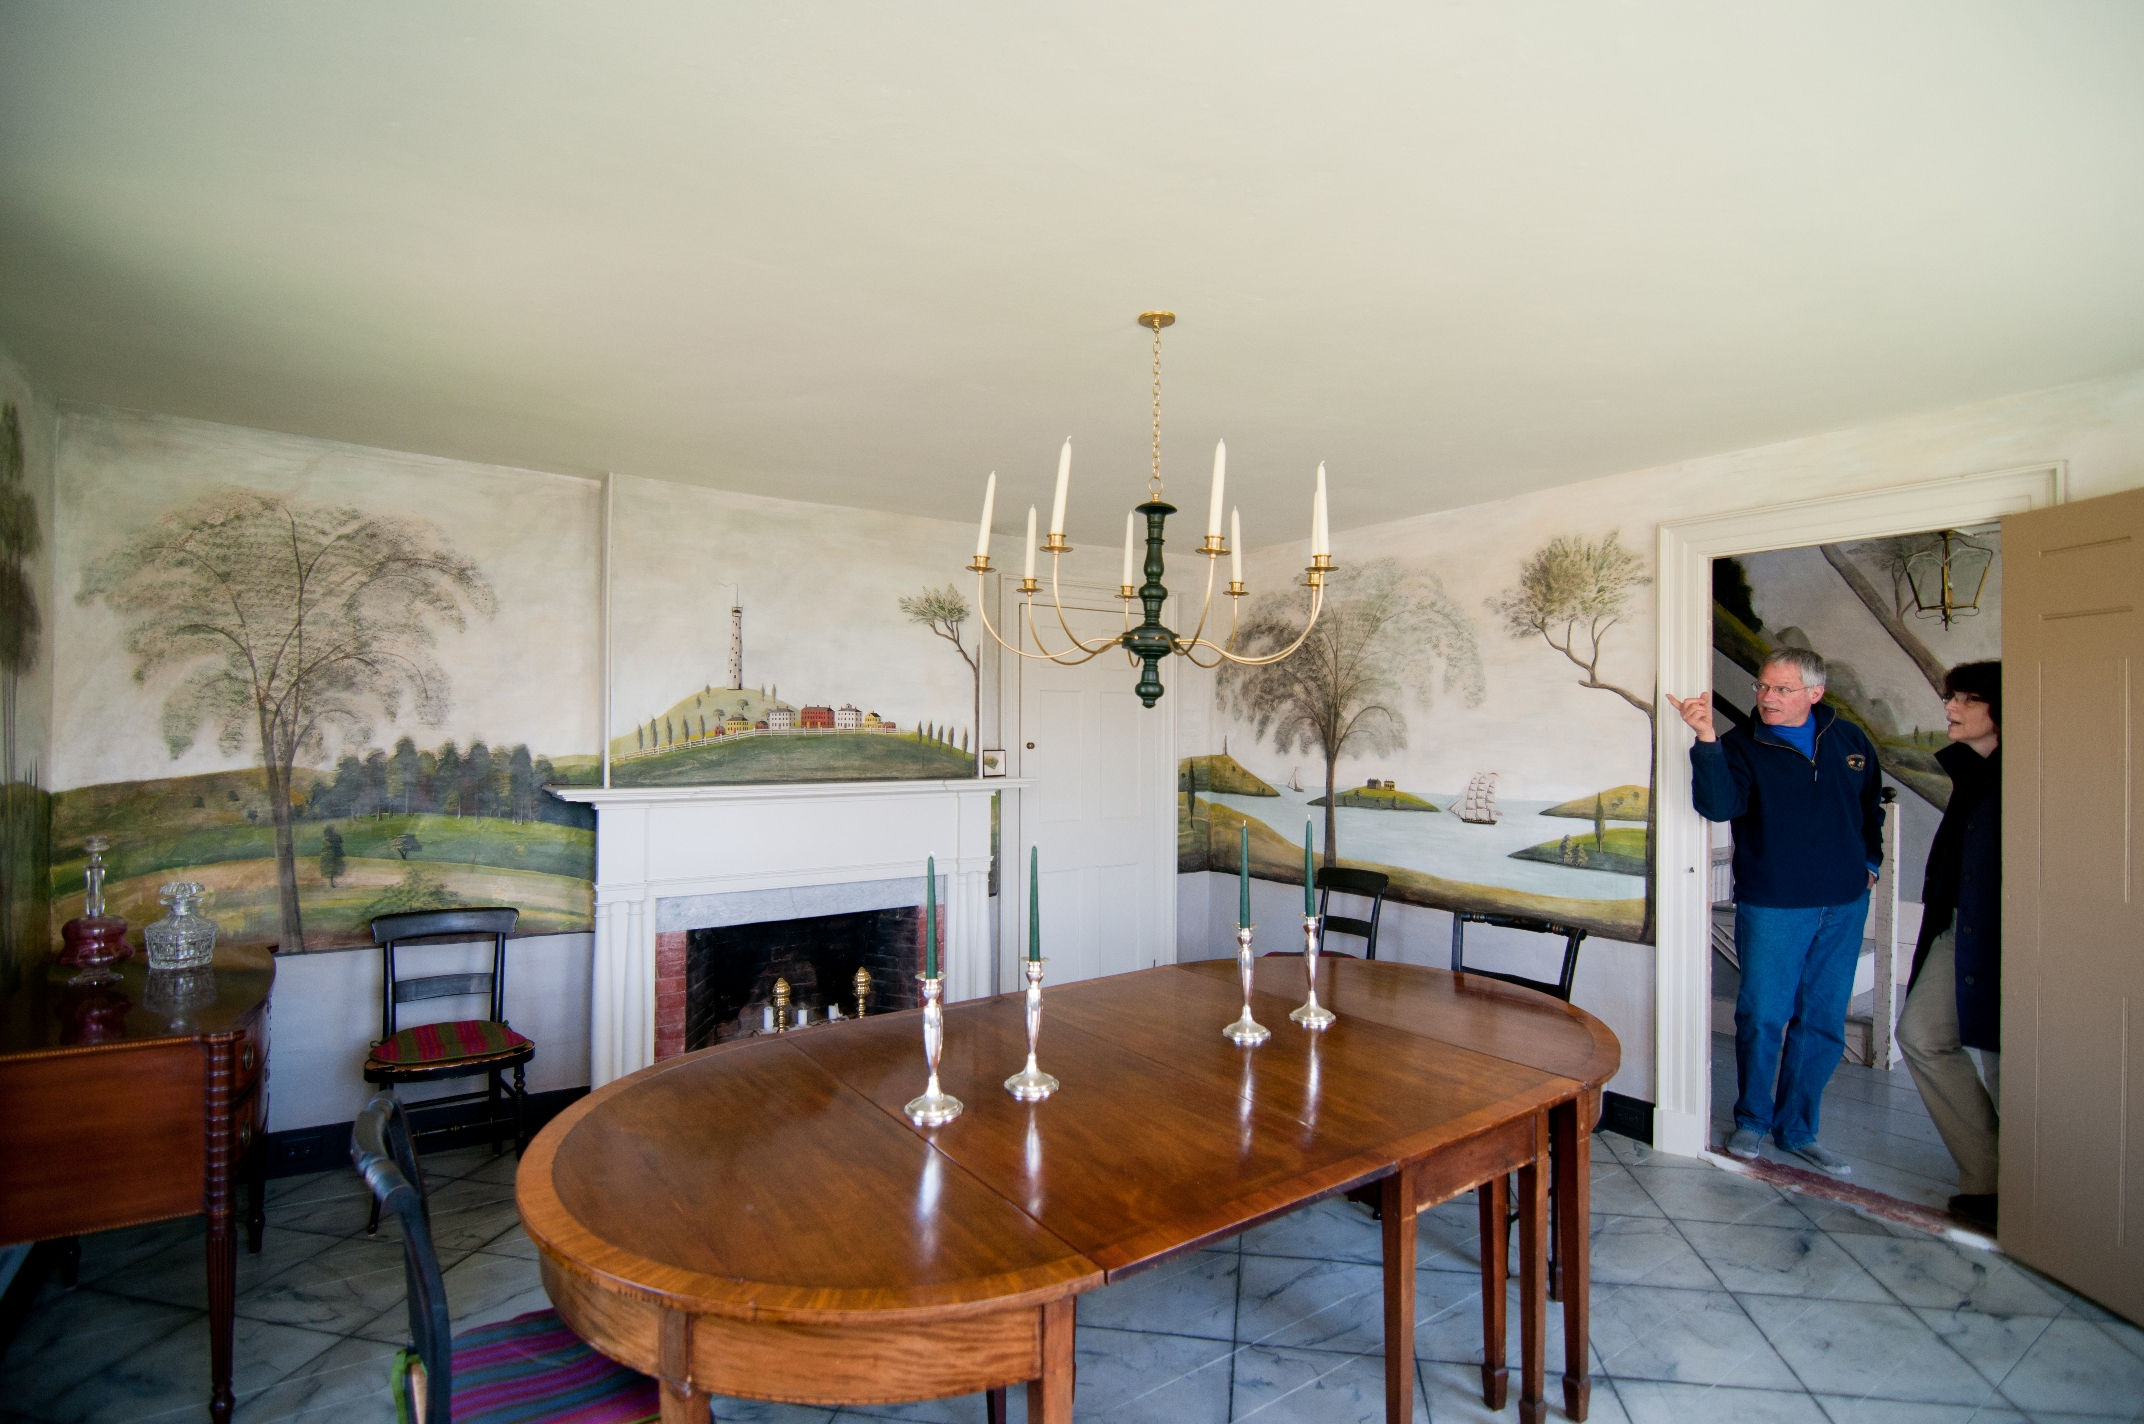 Tim Cook (at left, with former Preservation Alliance board member Sue Booth) described the preservation easement that protects his 1811 federal farmhouse with rare, intact Rufus Porter murals at the recent Passing It On program. Photo: Steve Booth